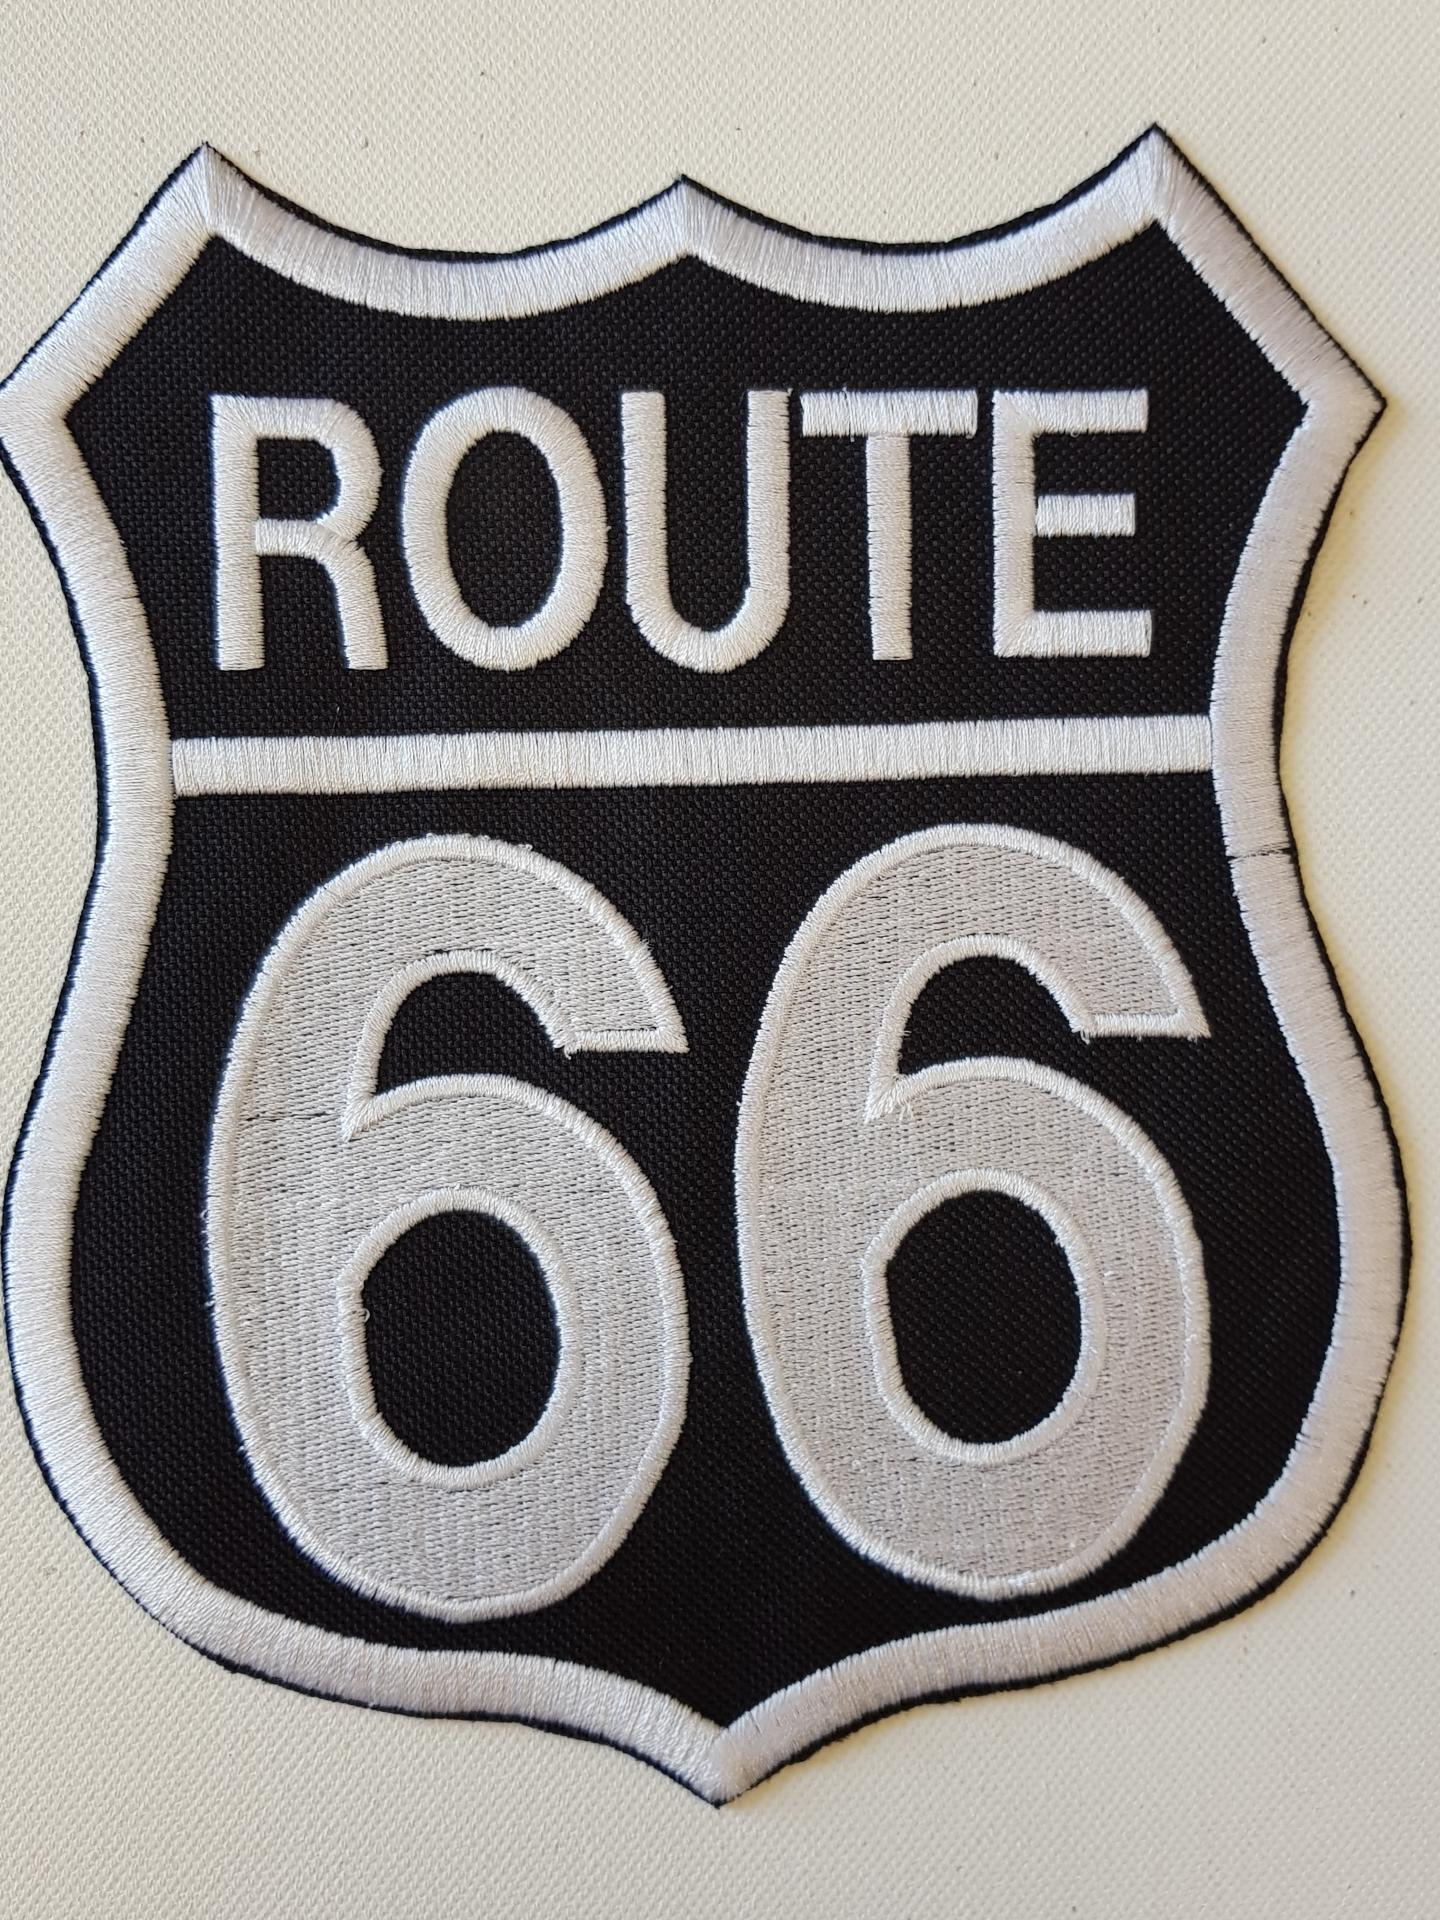 Ecusson route 66 fond noir grand